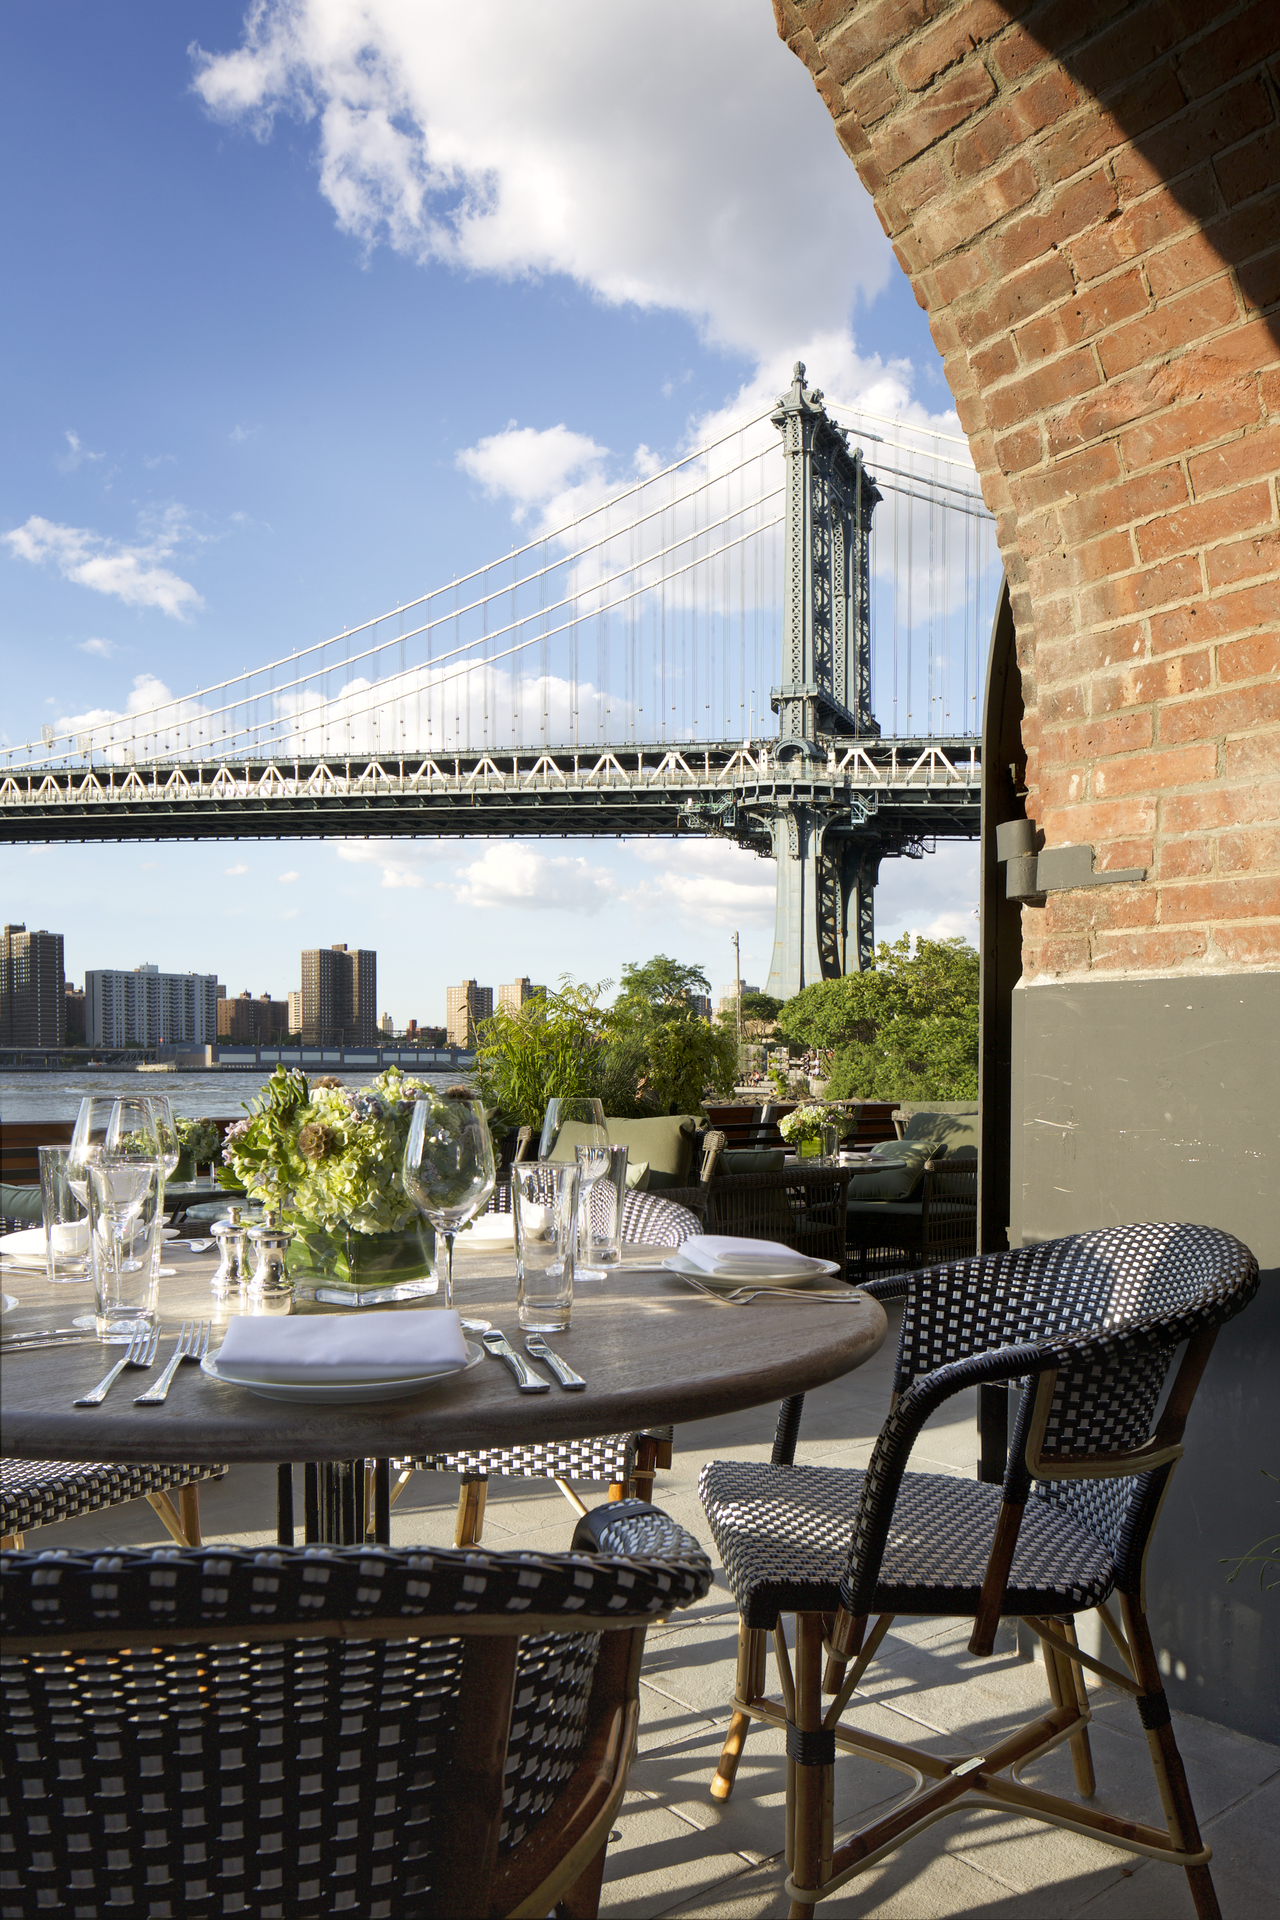 A view of Brooklyn Bridge from the outdoor terrace